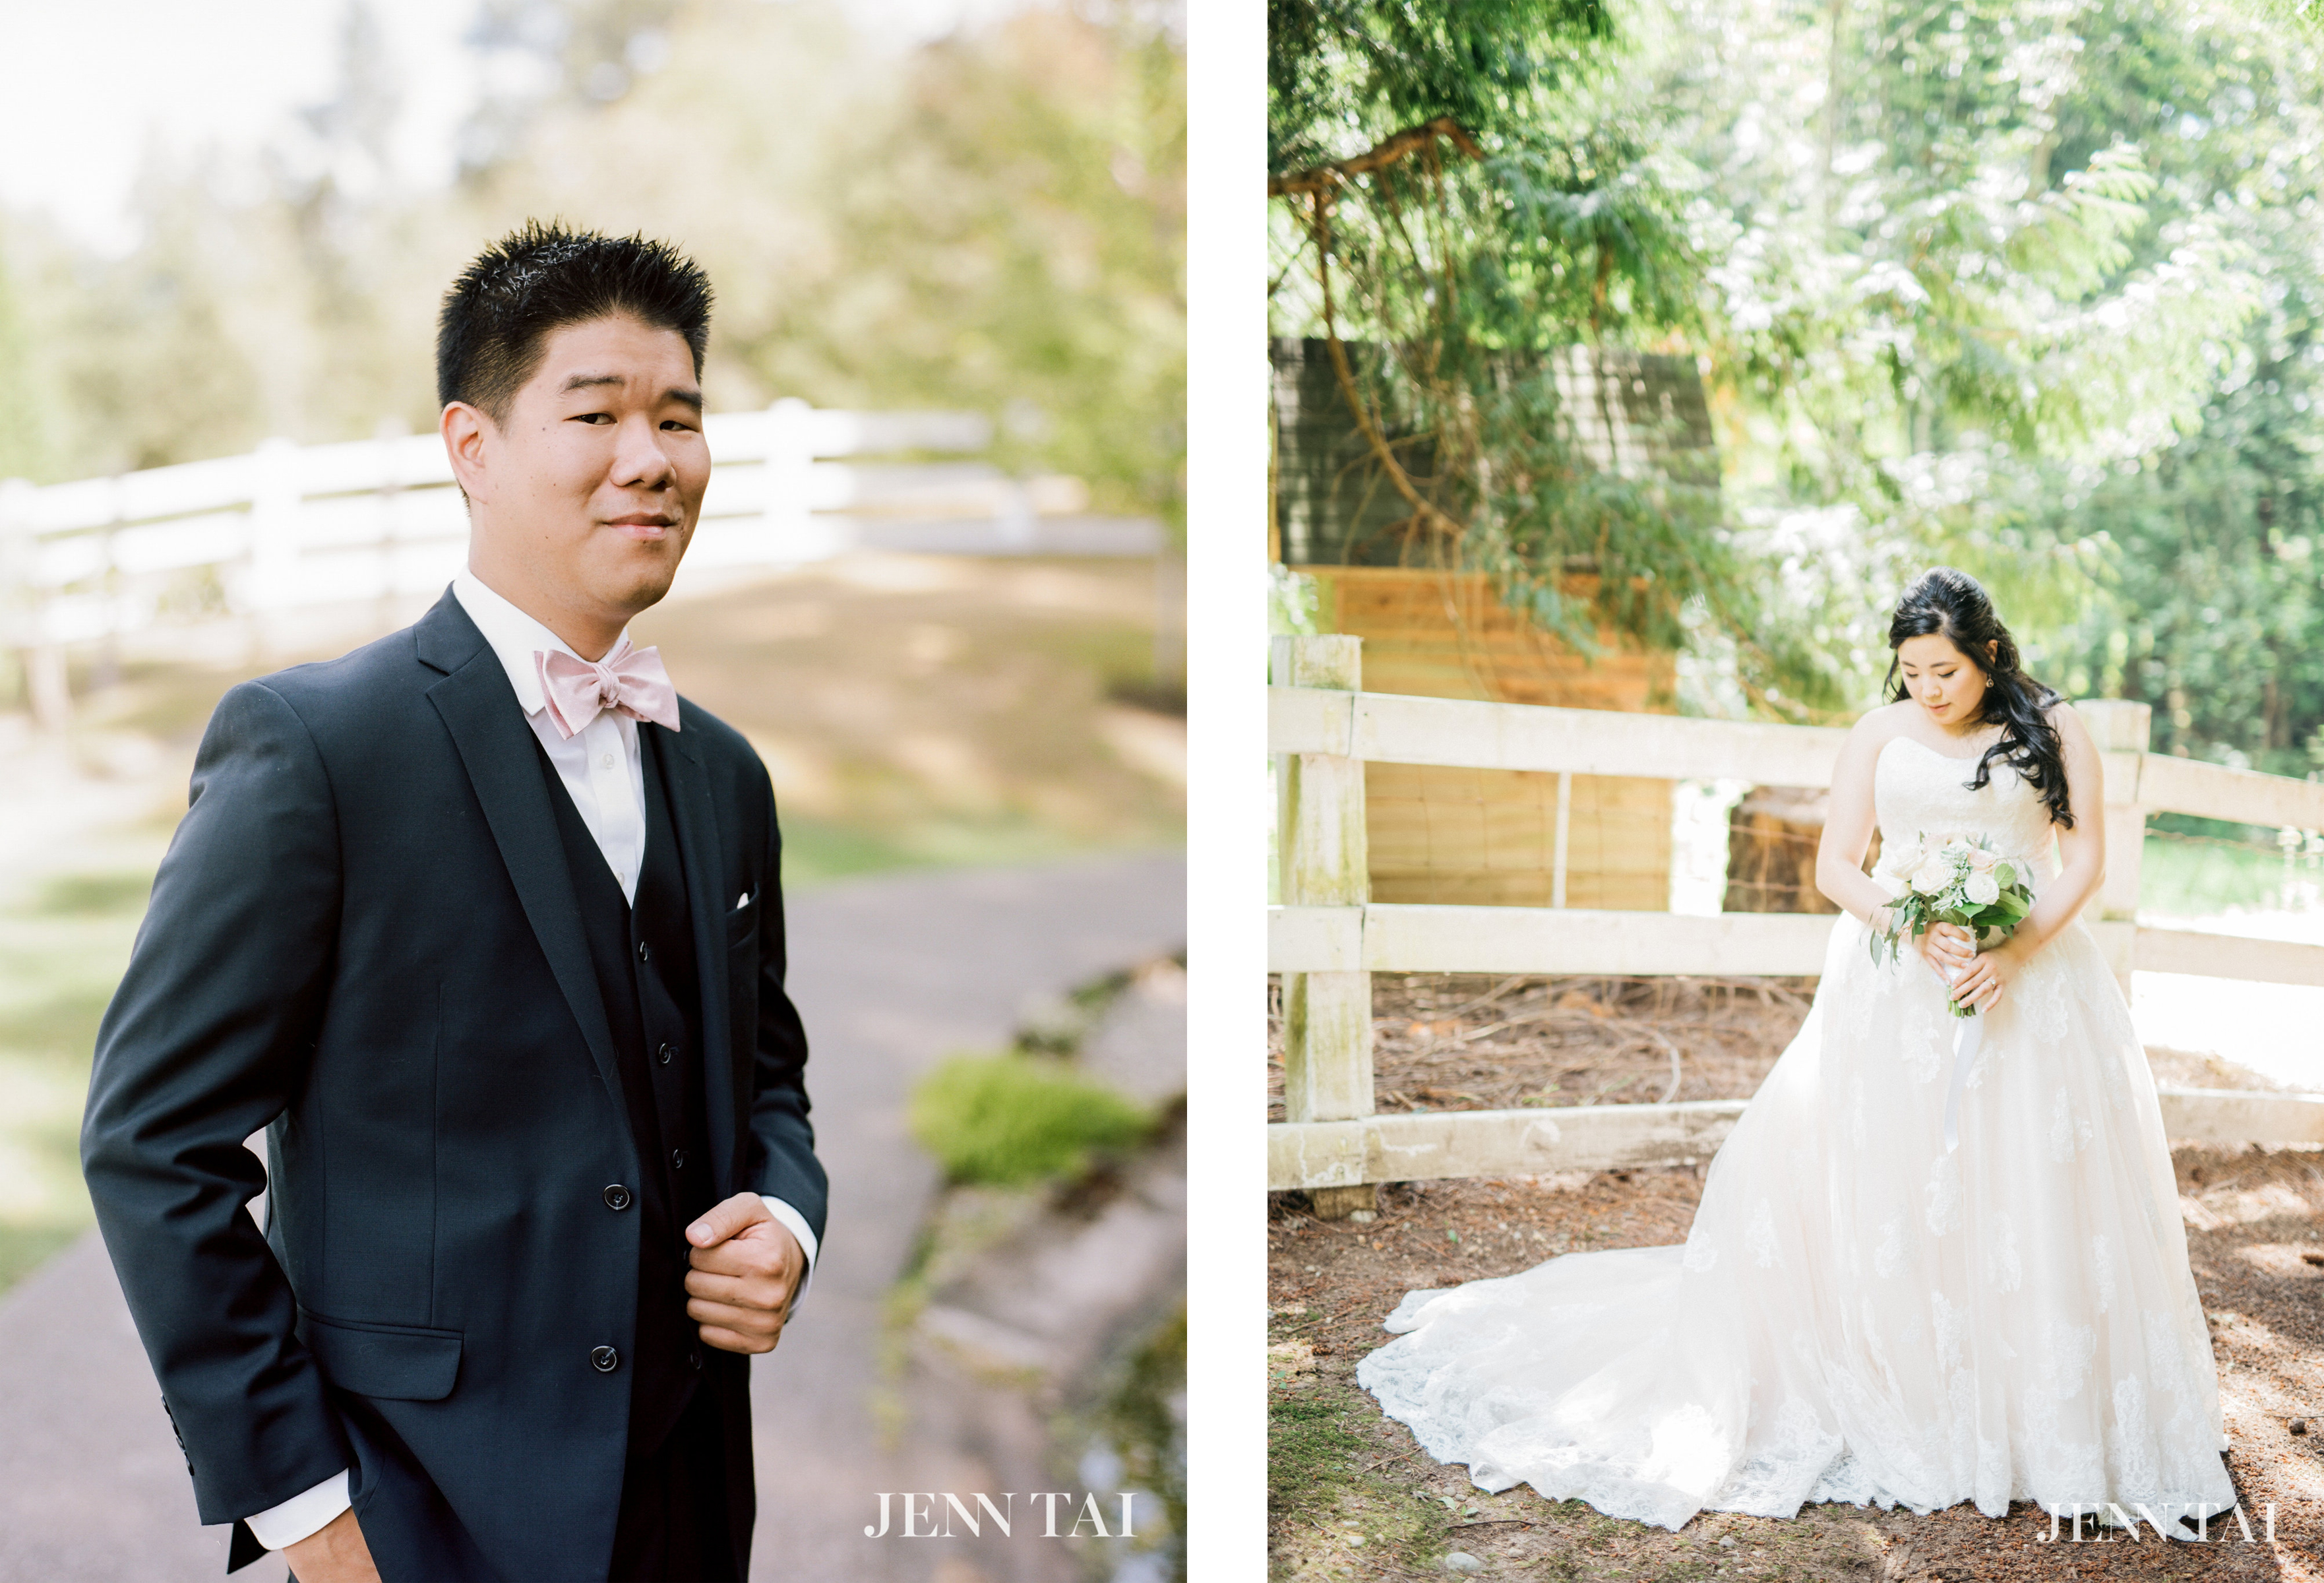 Photographer Jenn Tai Photography Planner Sweet Pea Events Ceremony Venue Holy Family Catholic Church Reception Delille Cellars